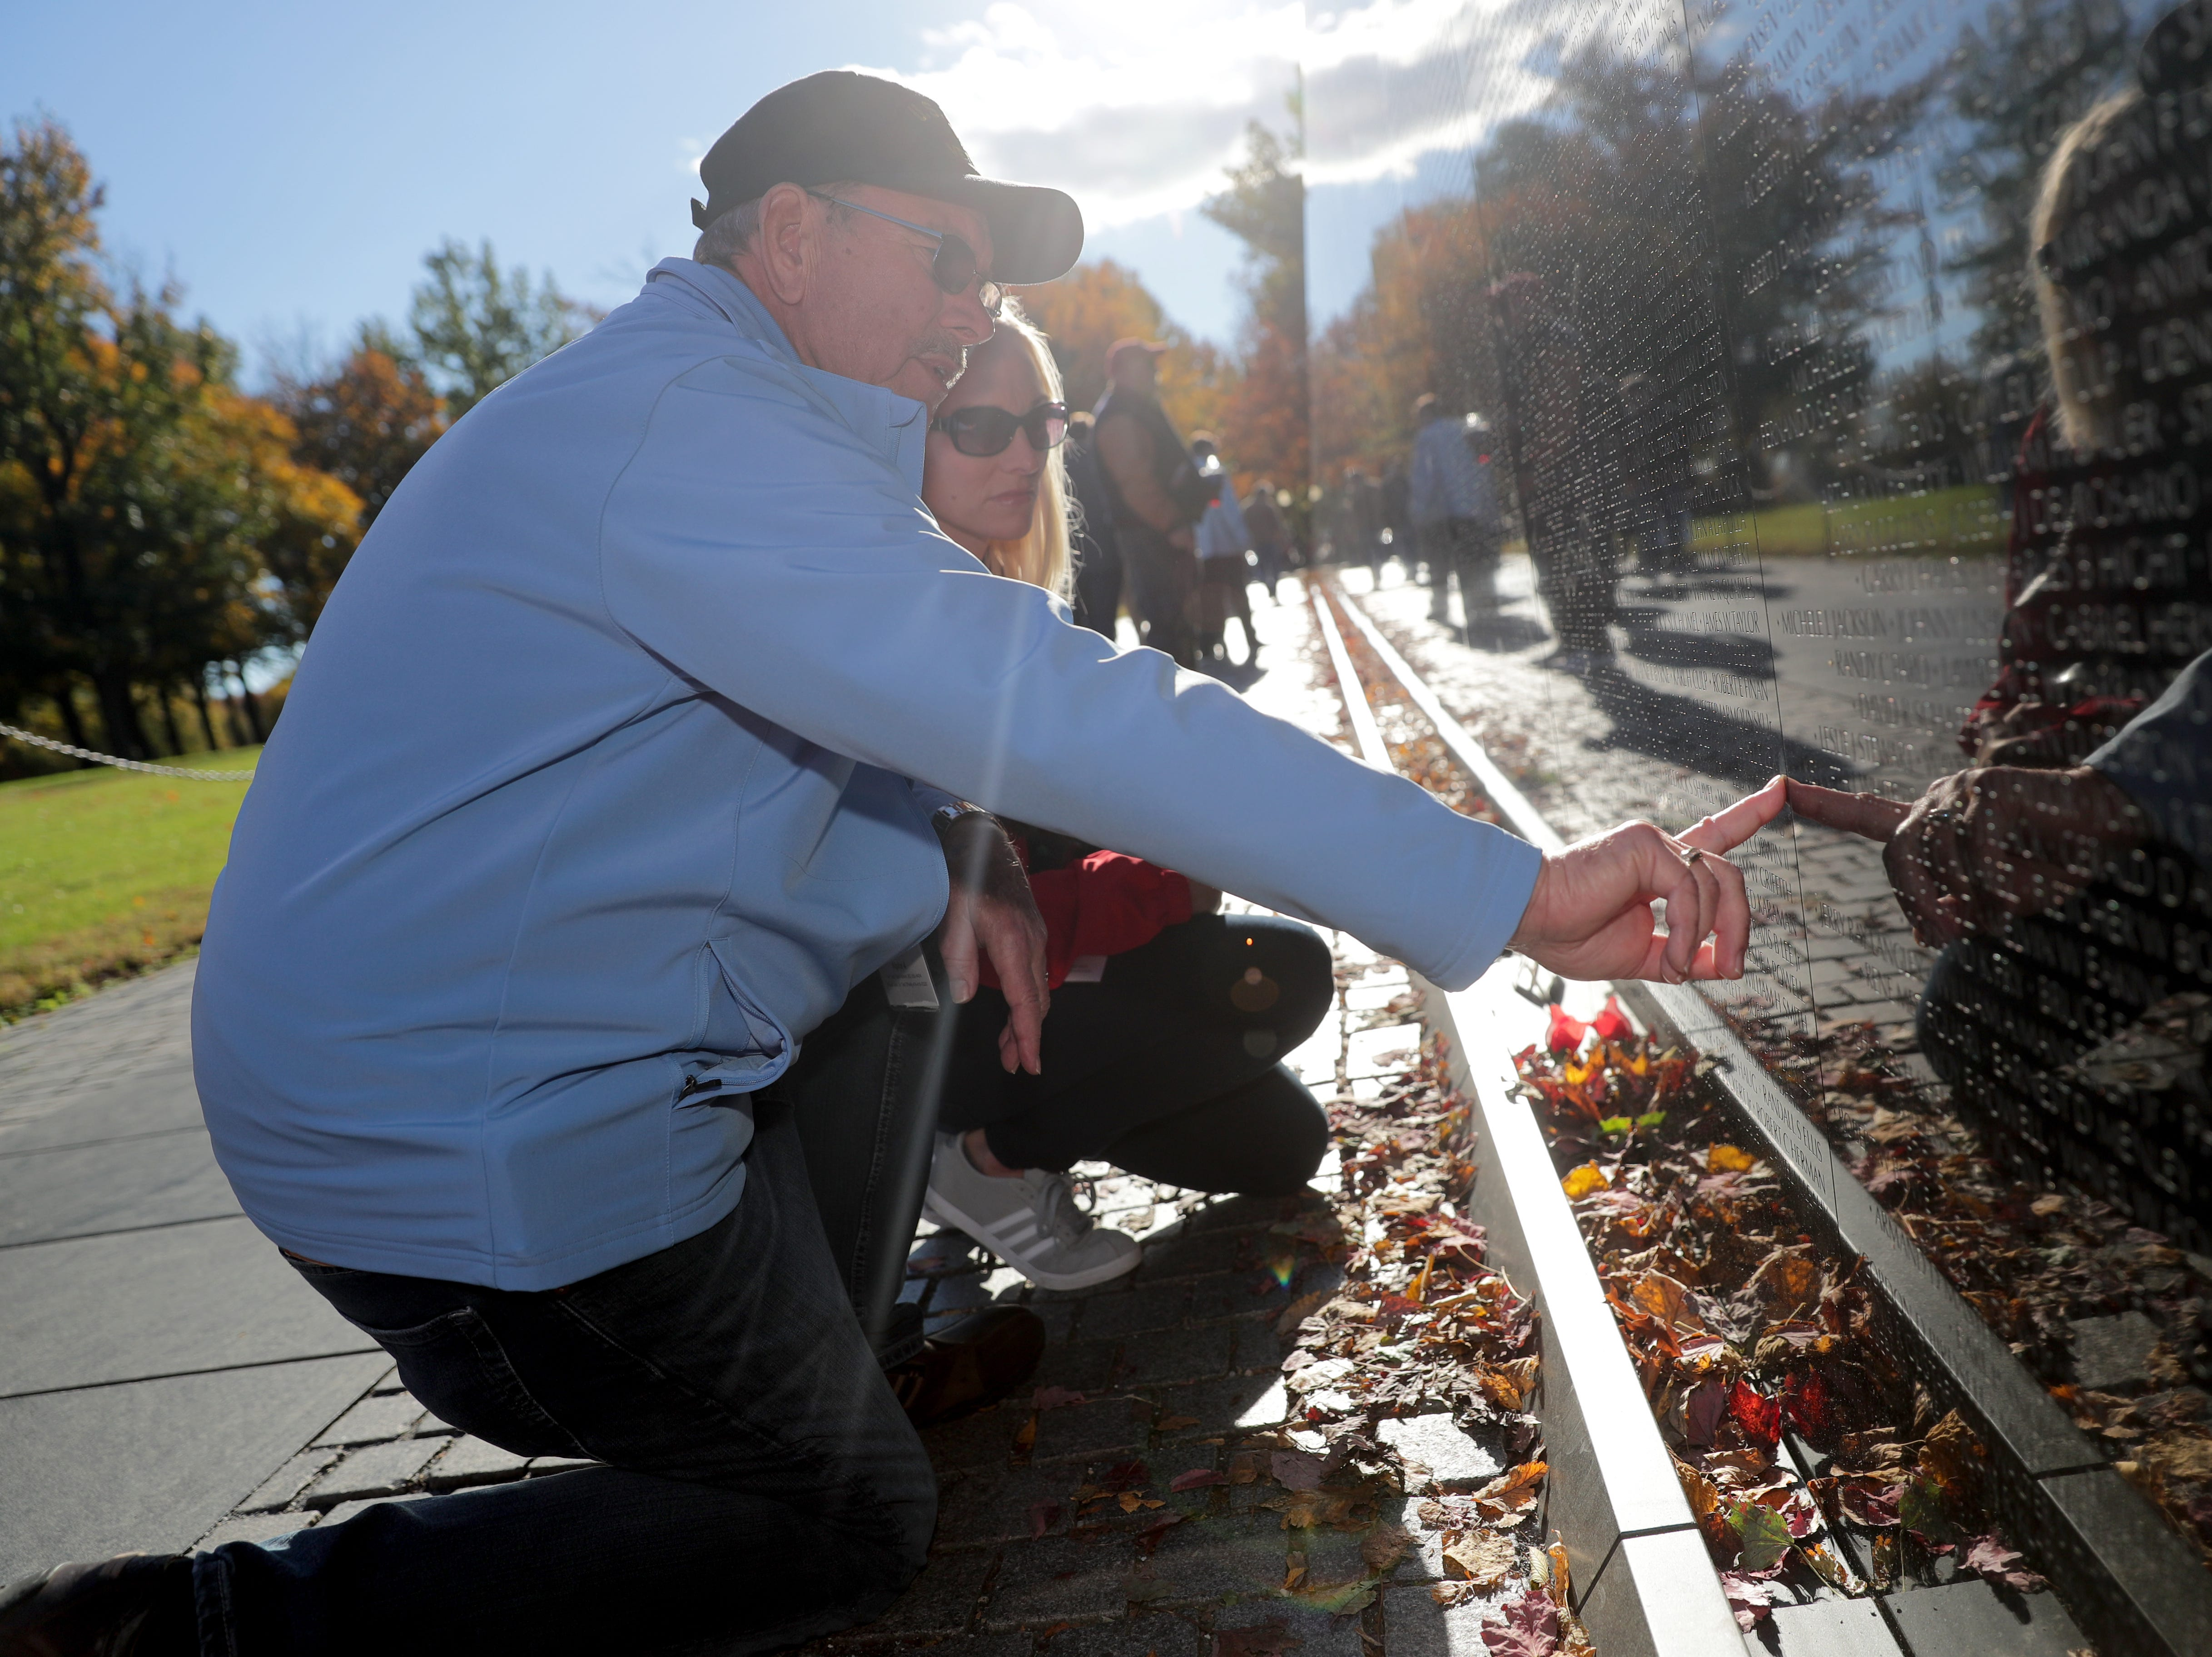 Vietnam Navy veteran Wally Beck, from Norwalk, Wisconsin, looks up a neighbor's name at the Vietnam Veterans Memorial while with his Honor Flight guardian, daughter Cathy Berrall of Sussex.